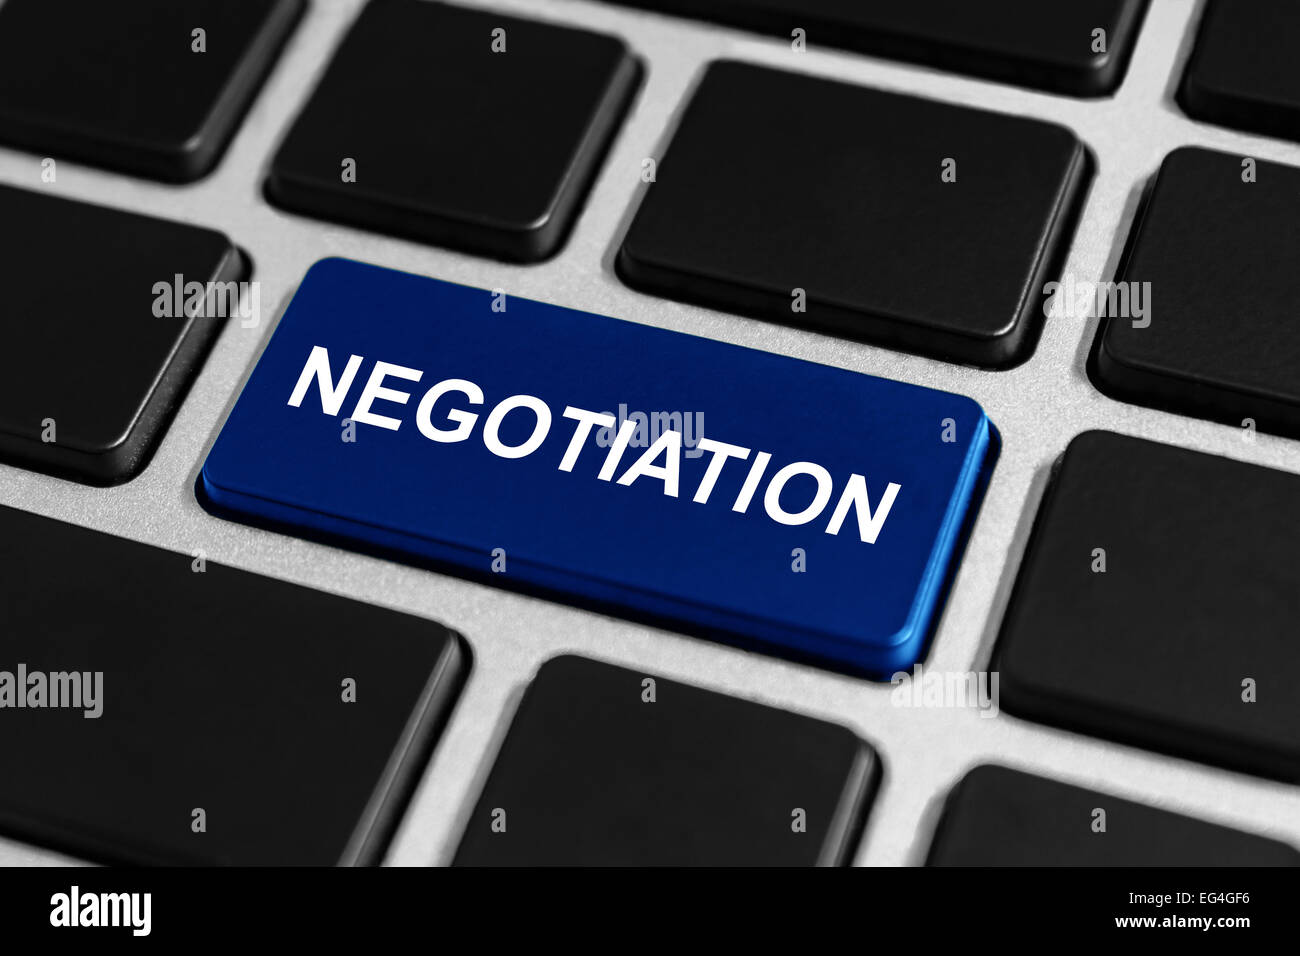 negotiation blue button on keyboard, business concept - Stock Image